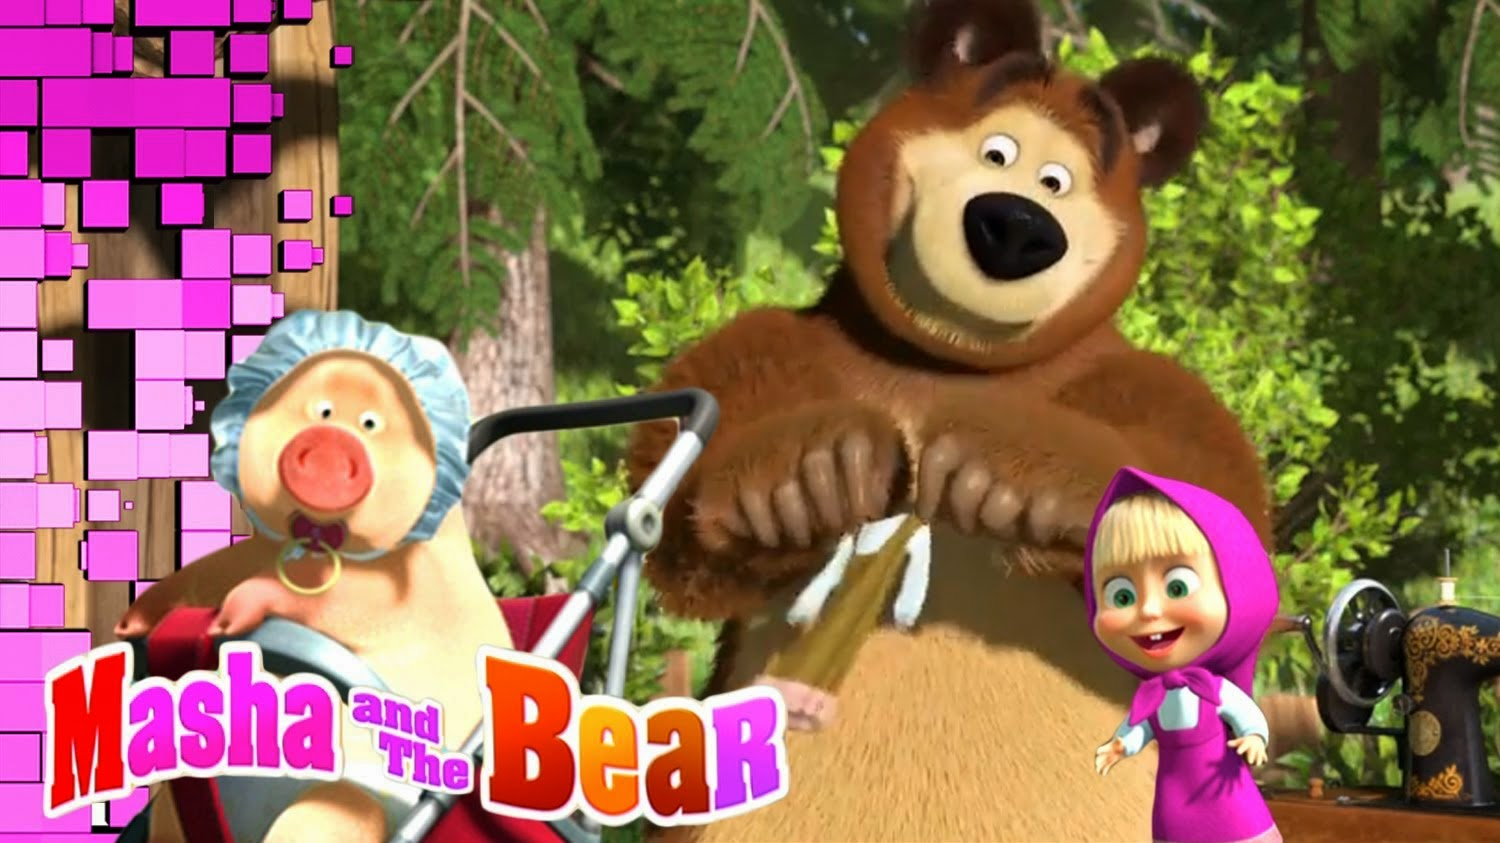 KUMPULAN GAMBAR MARSHA AND THE BEAR | Gambar Kartun 3D Marsha The Bear